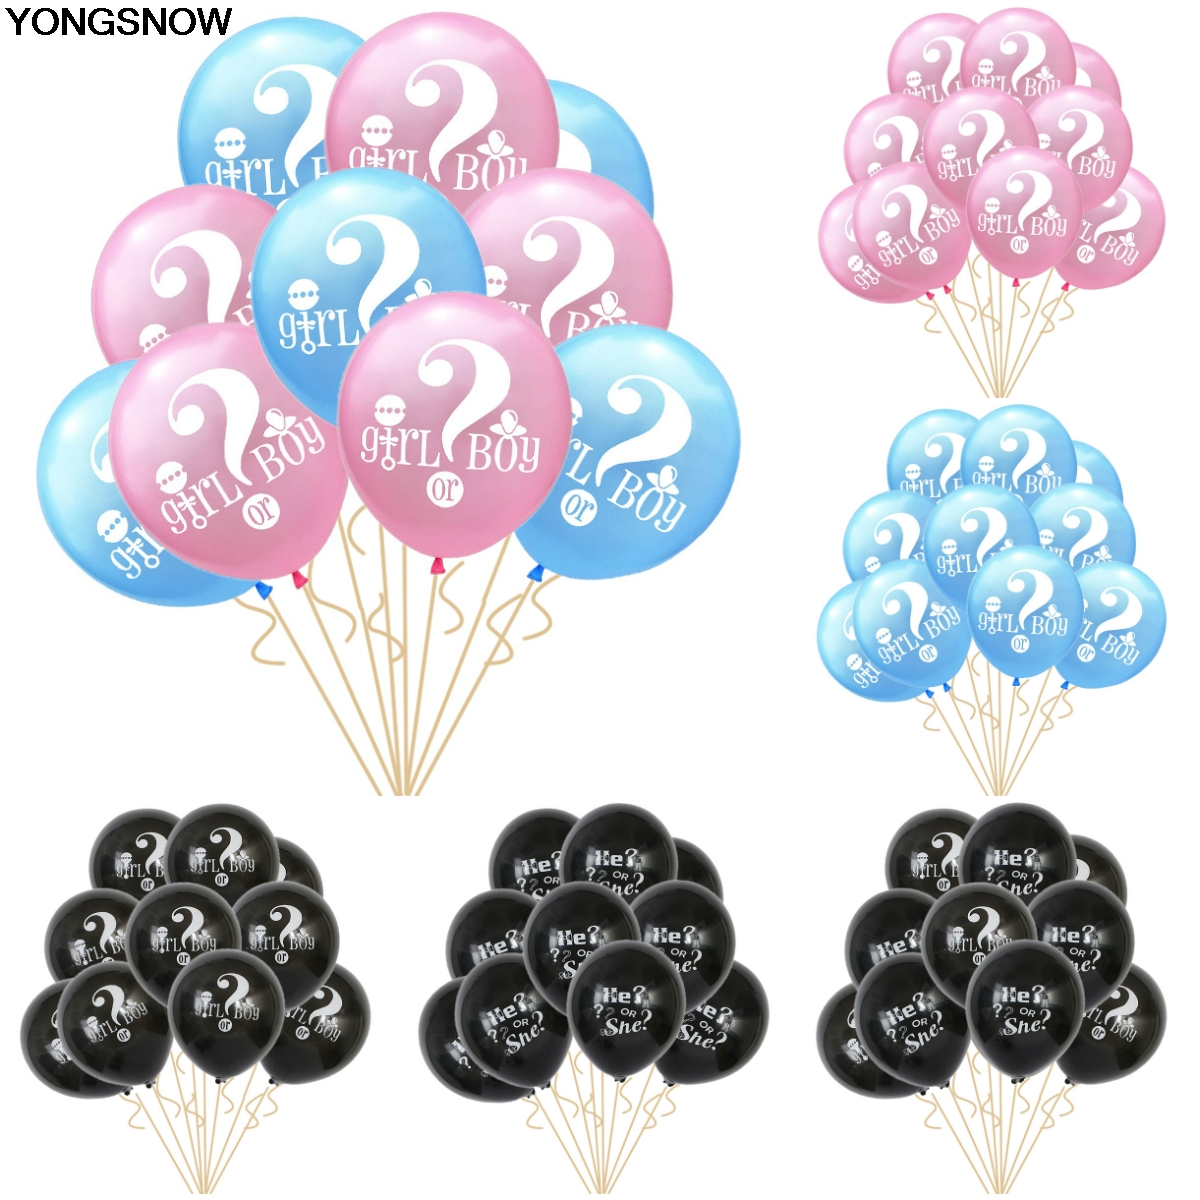 YONGSNOW 10Pcs 10-12inch Girl or Boy He or She Latex Balloon Inflatable Helium Air Gender Reveal Balloon Birthday Party Wedding